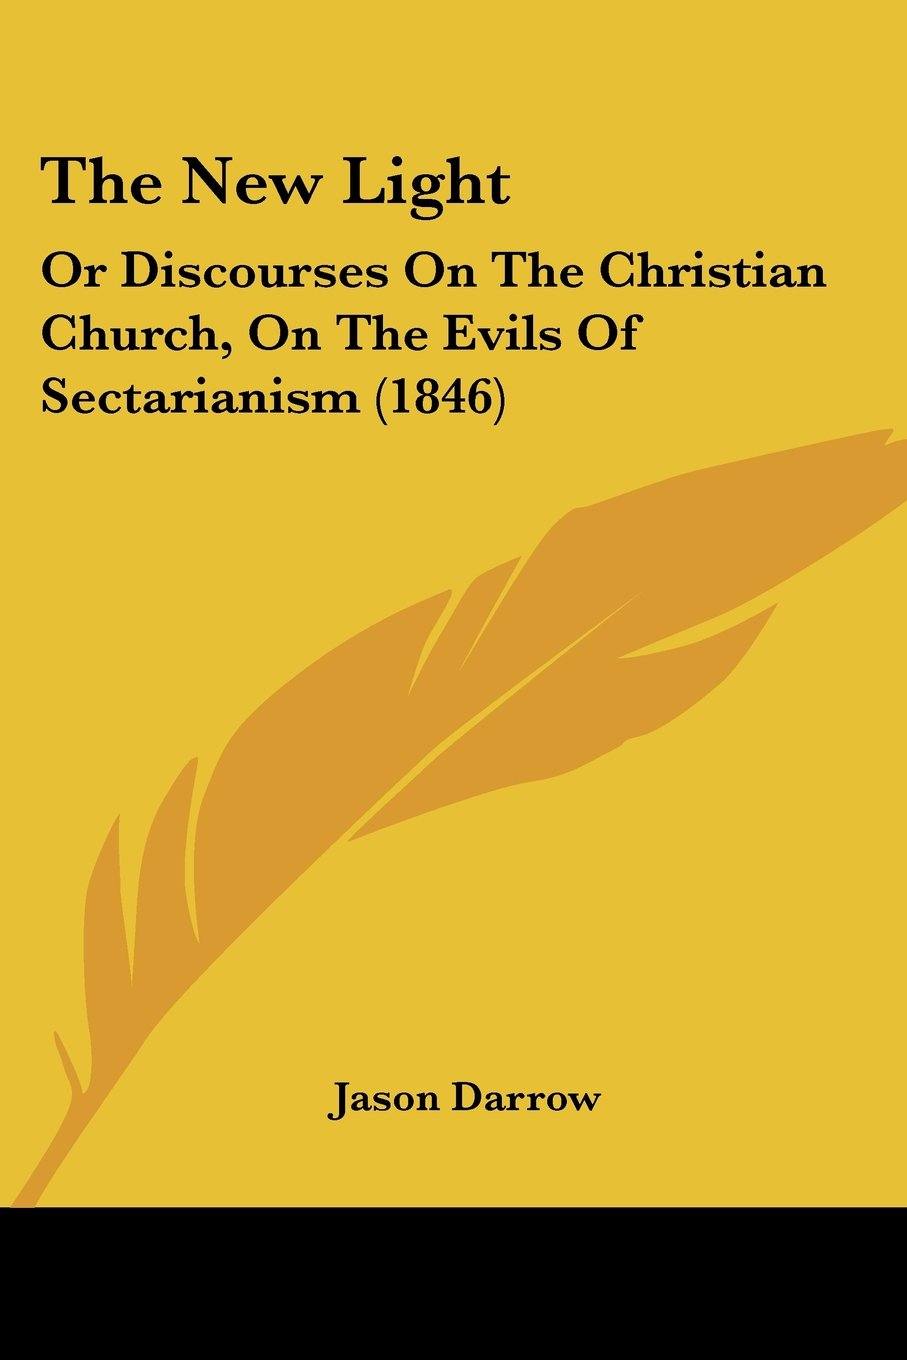 The New Light: Or Discourses On The Christian Church, On The Evils Of Sectarianism (1846) ePub fb2 ebook